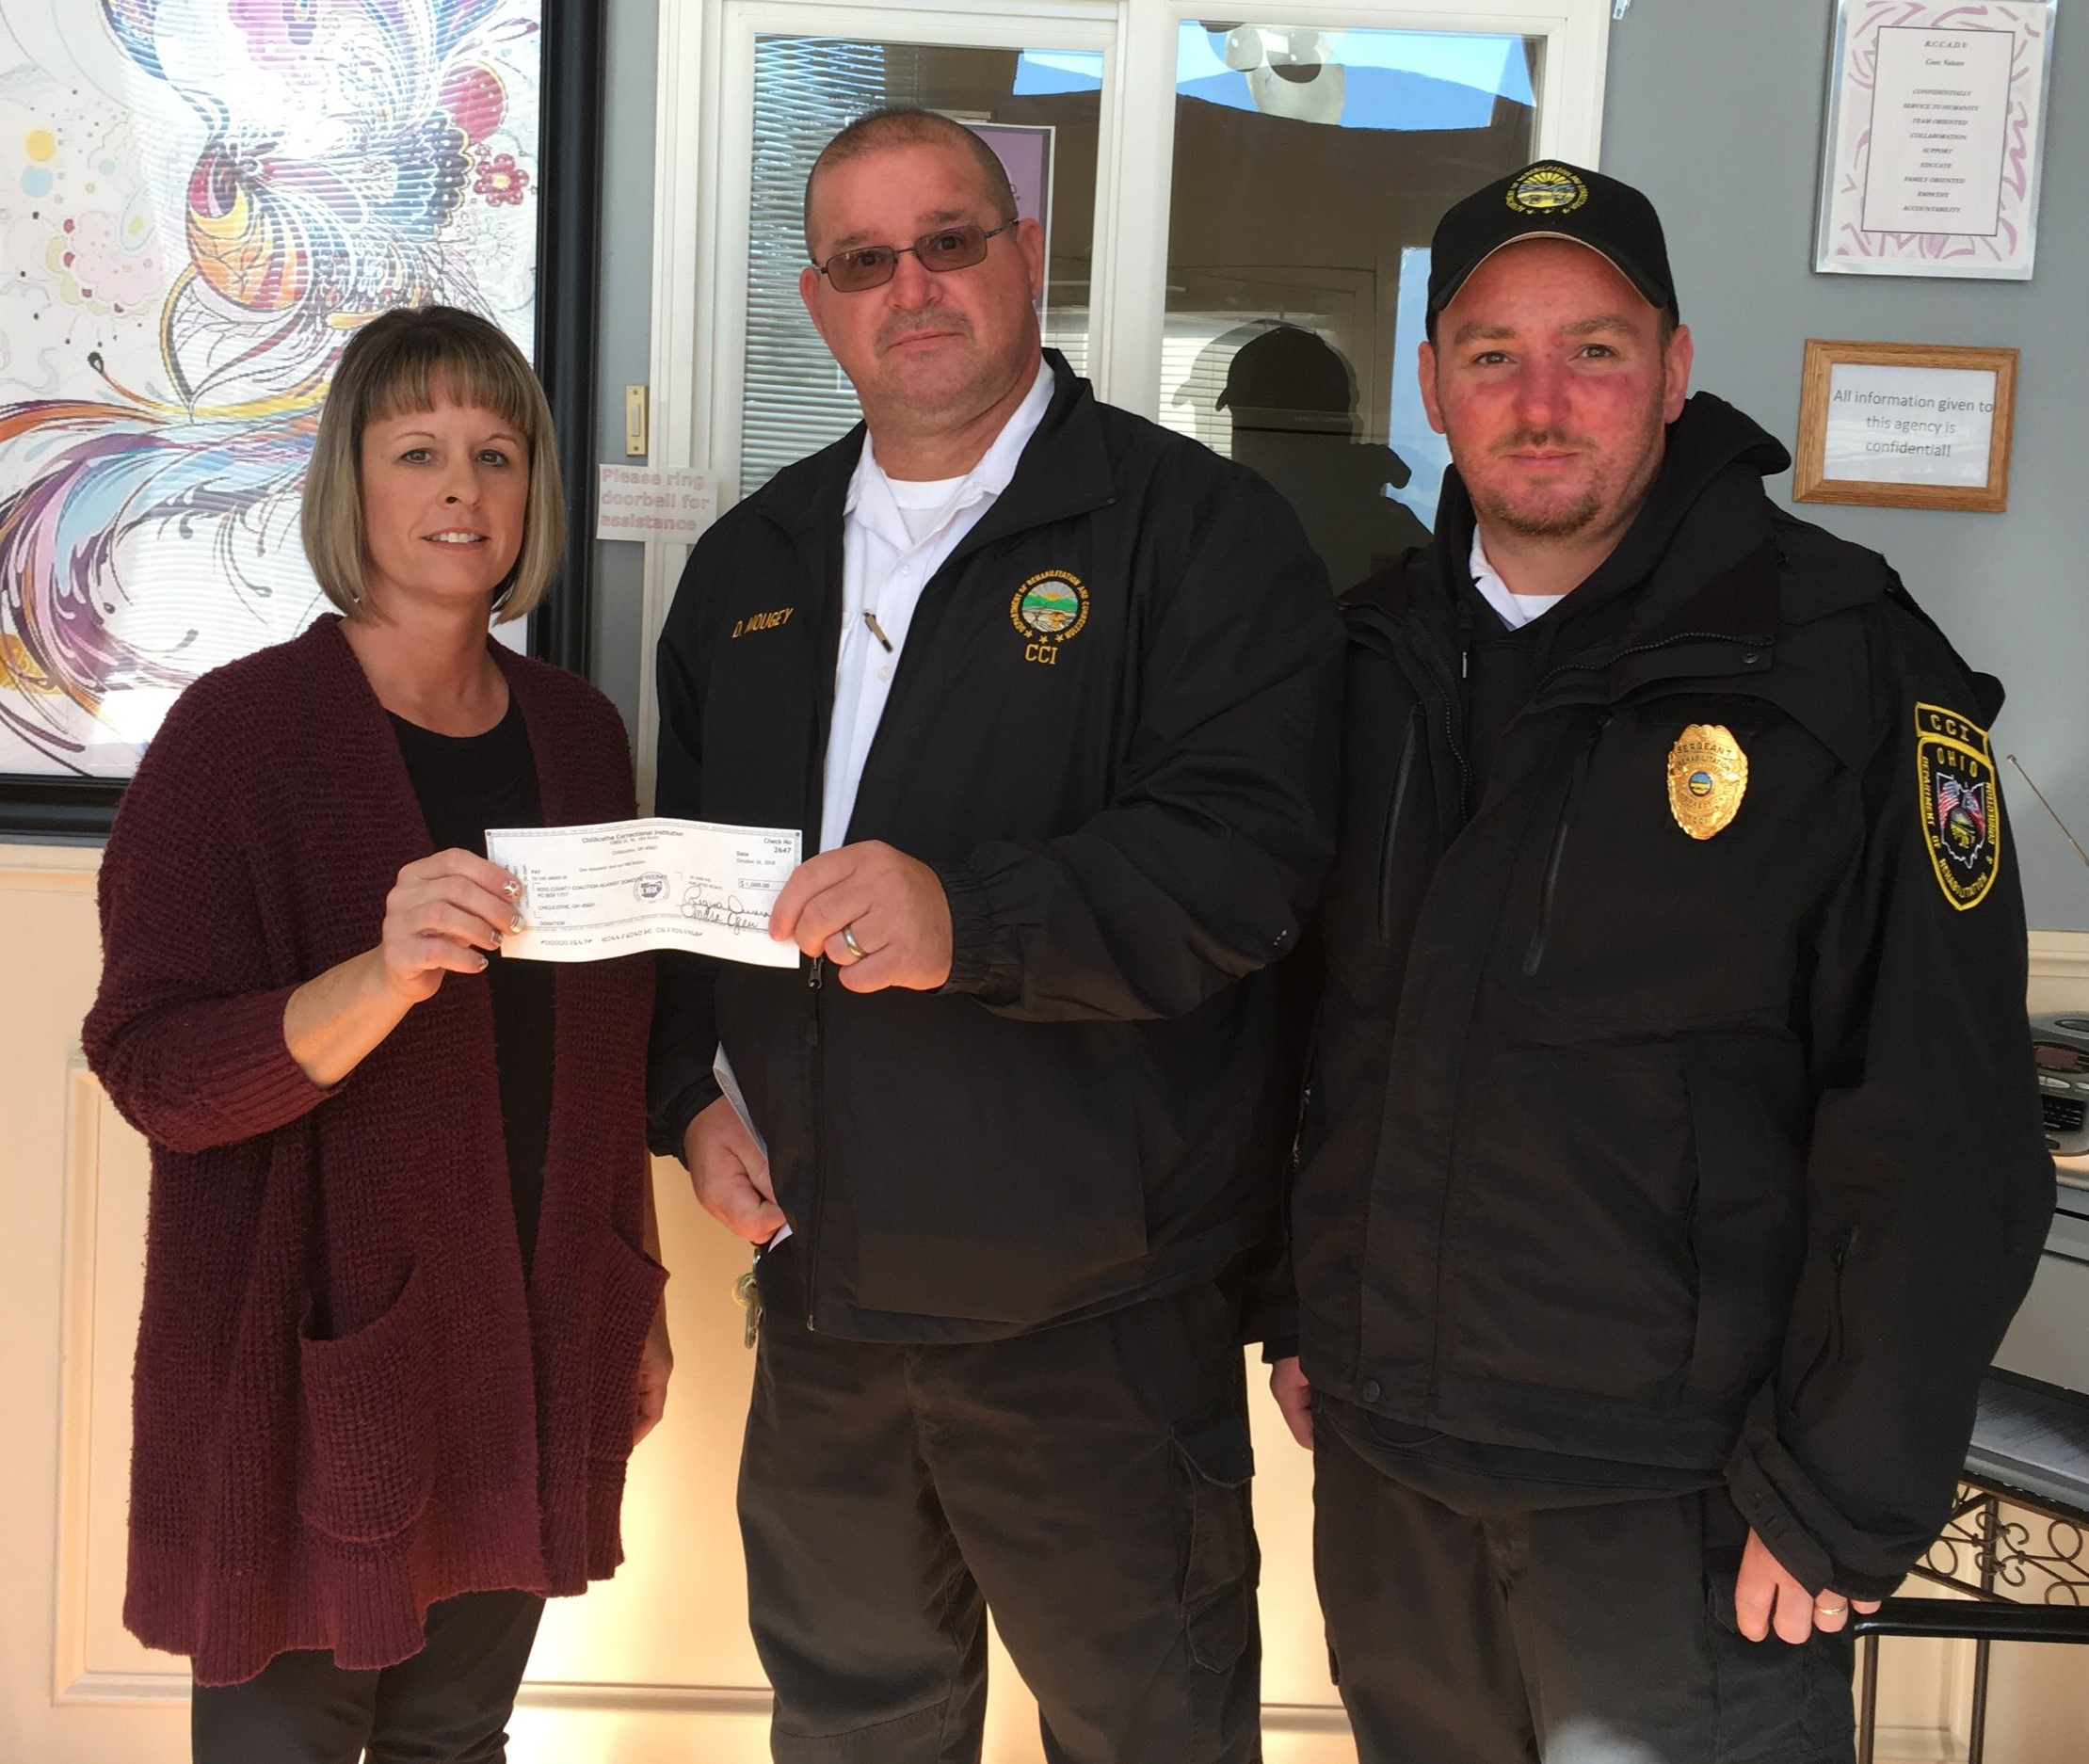 Helping Hands Group Donates to Violence Shelter